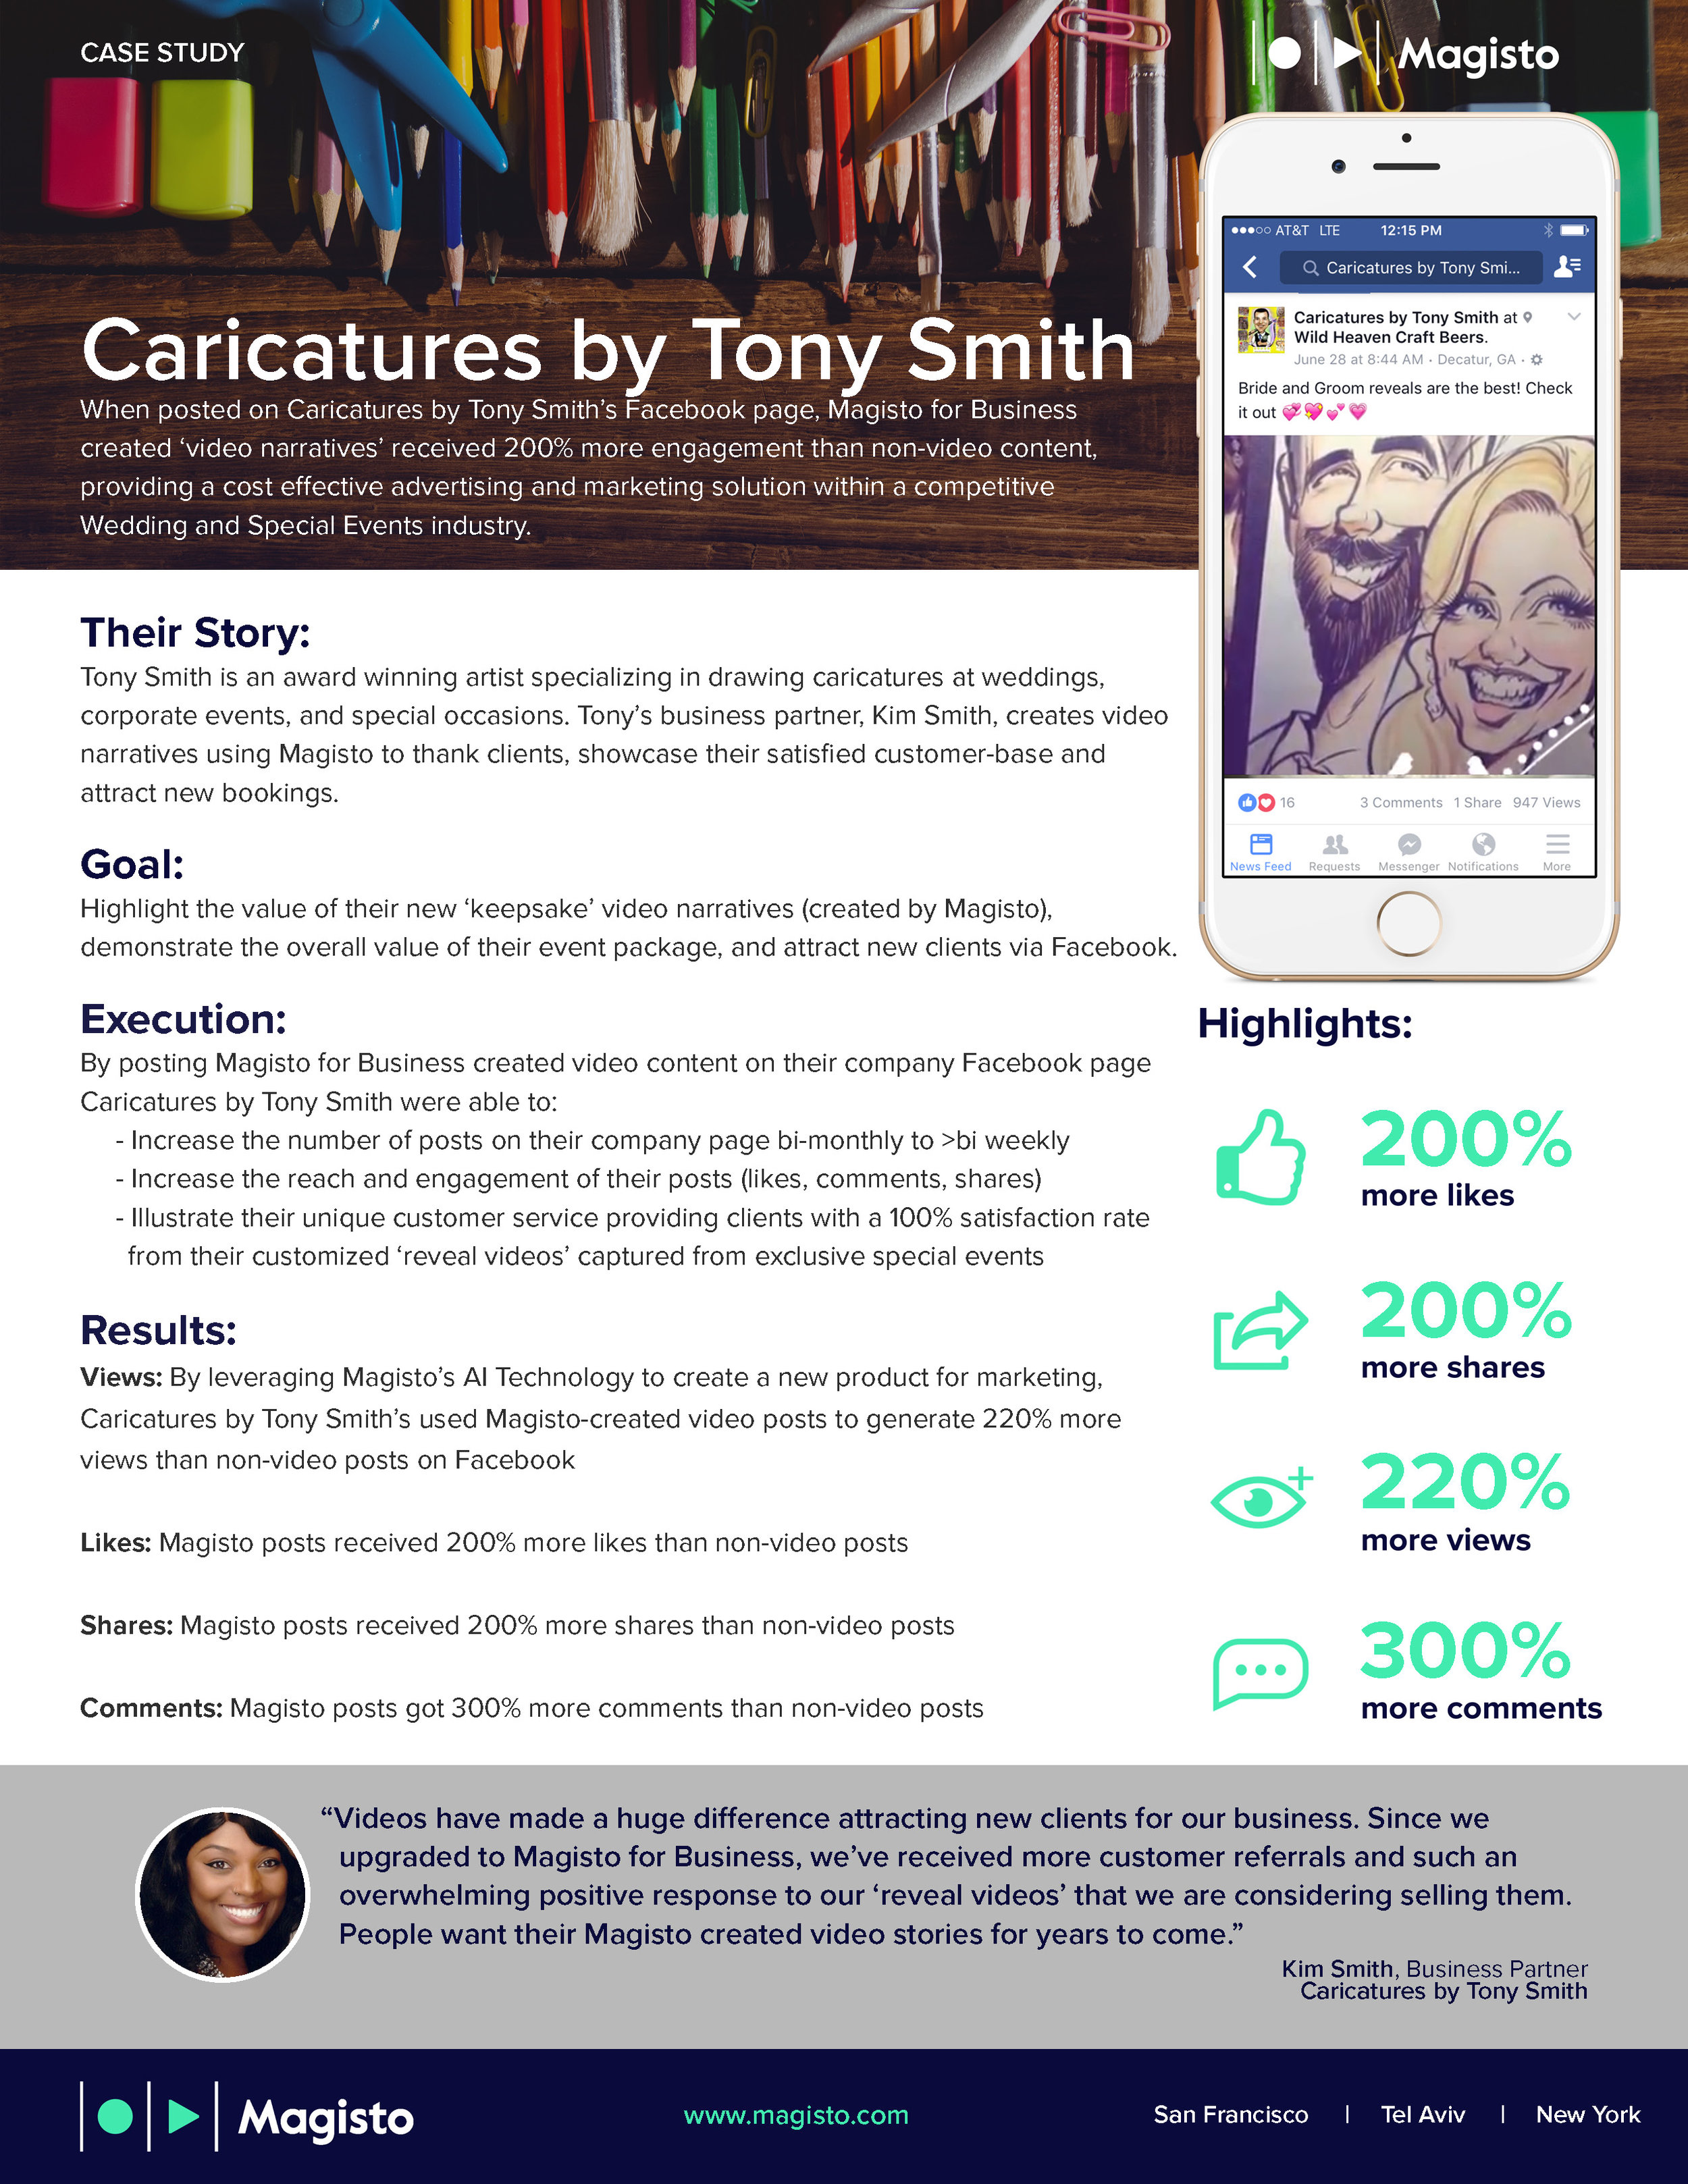 Caricatures by Tony Smith Case Study.jpg